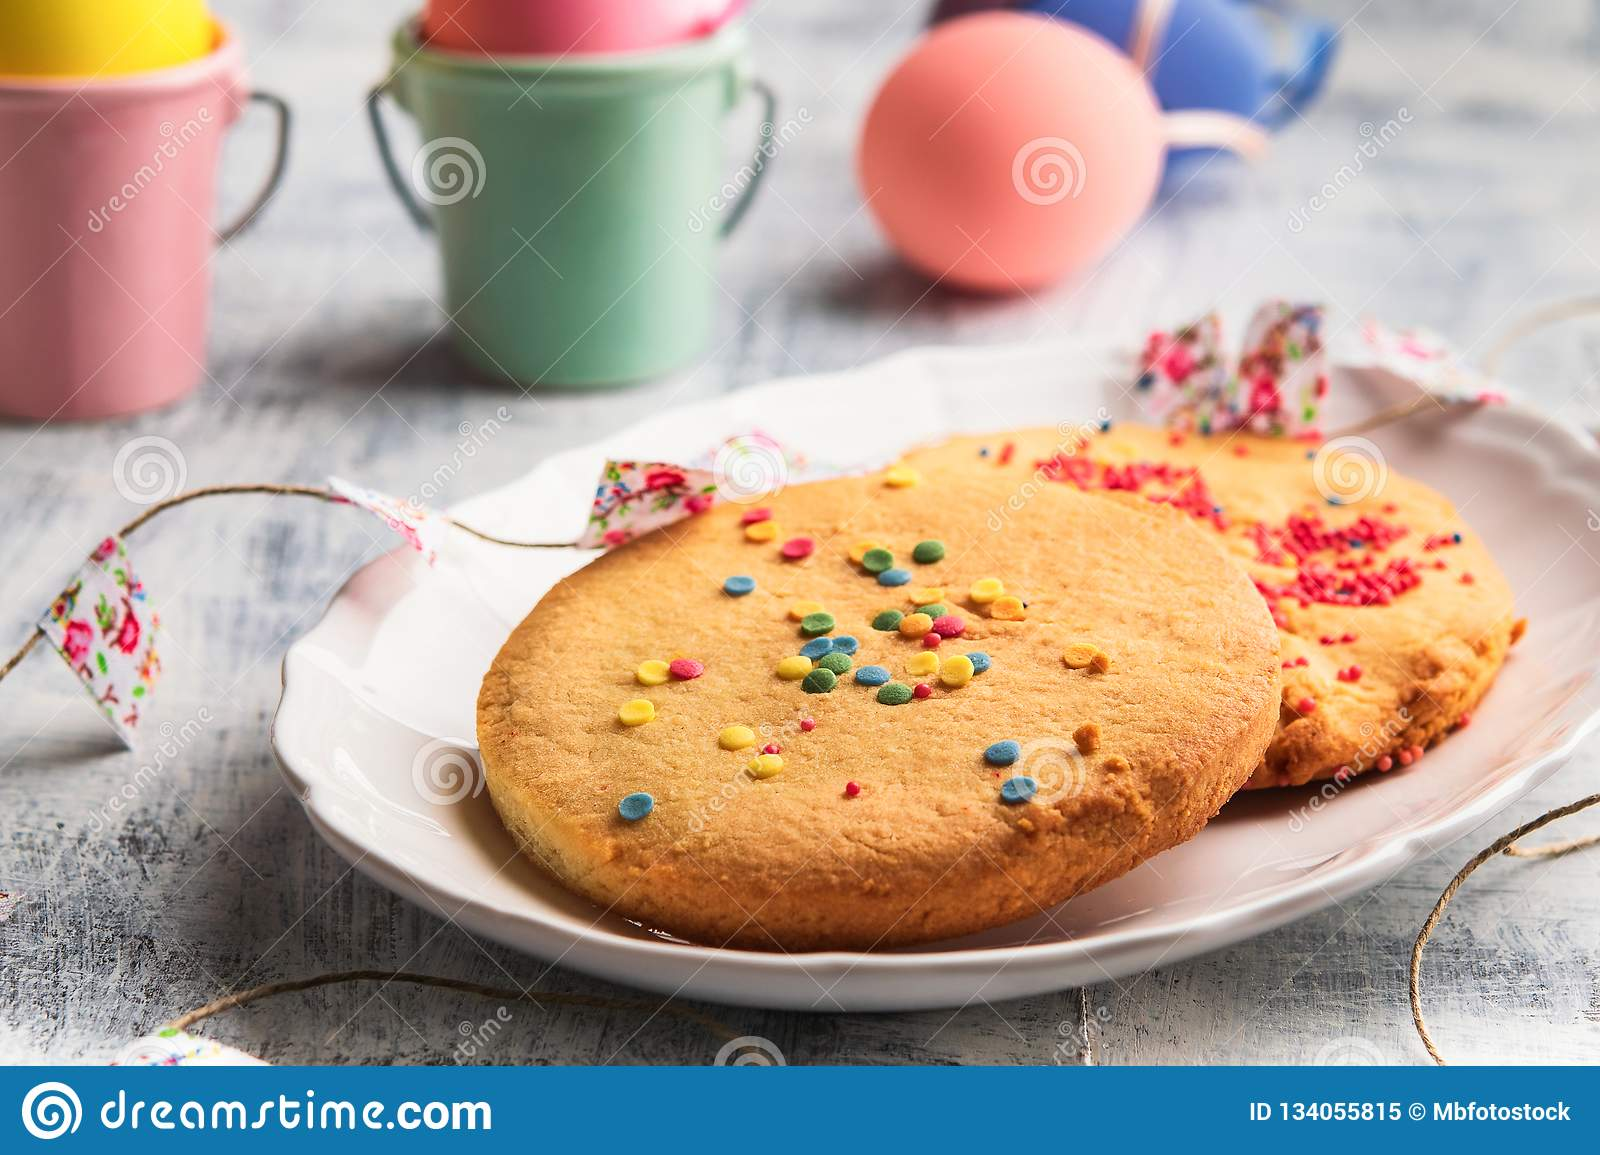 Easter Spring Cookies with colorful sprinkles on a white plate. Easter happy concept